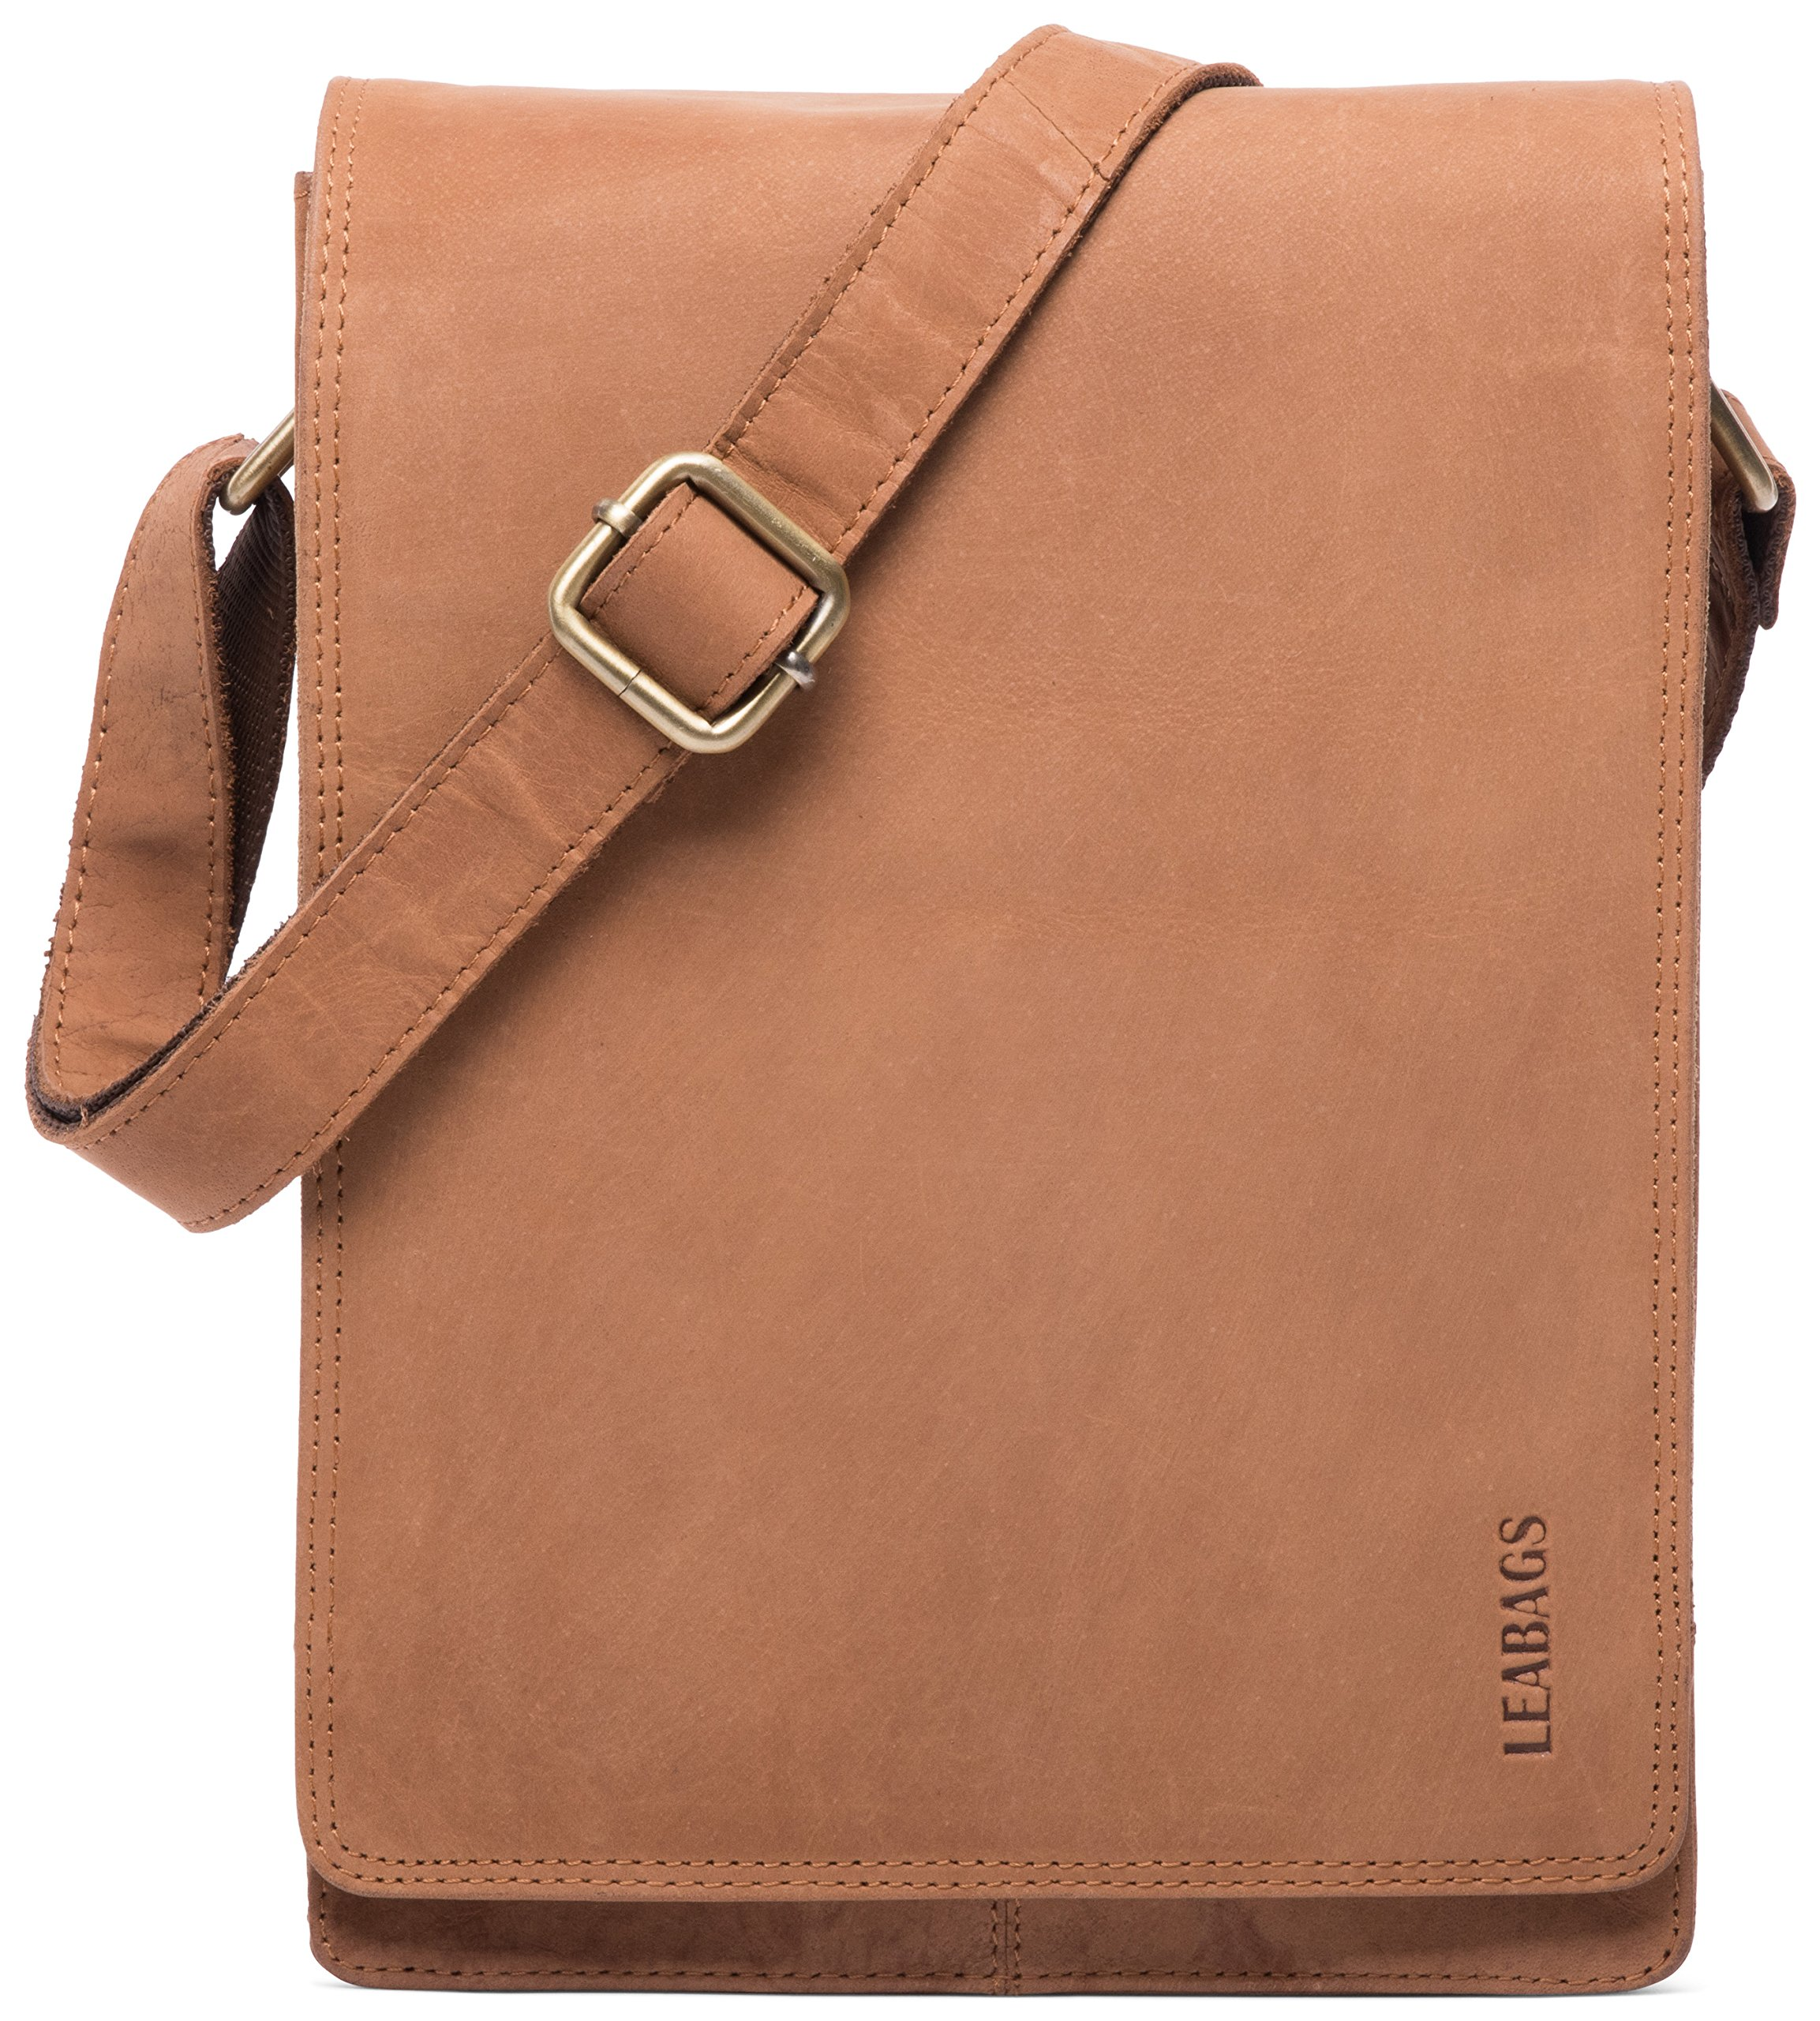 LEABAGS Dover genuine buffalo leather shoulder bag in vintage style - Brown